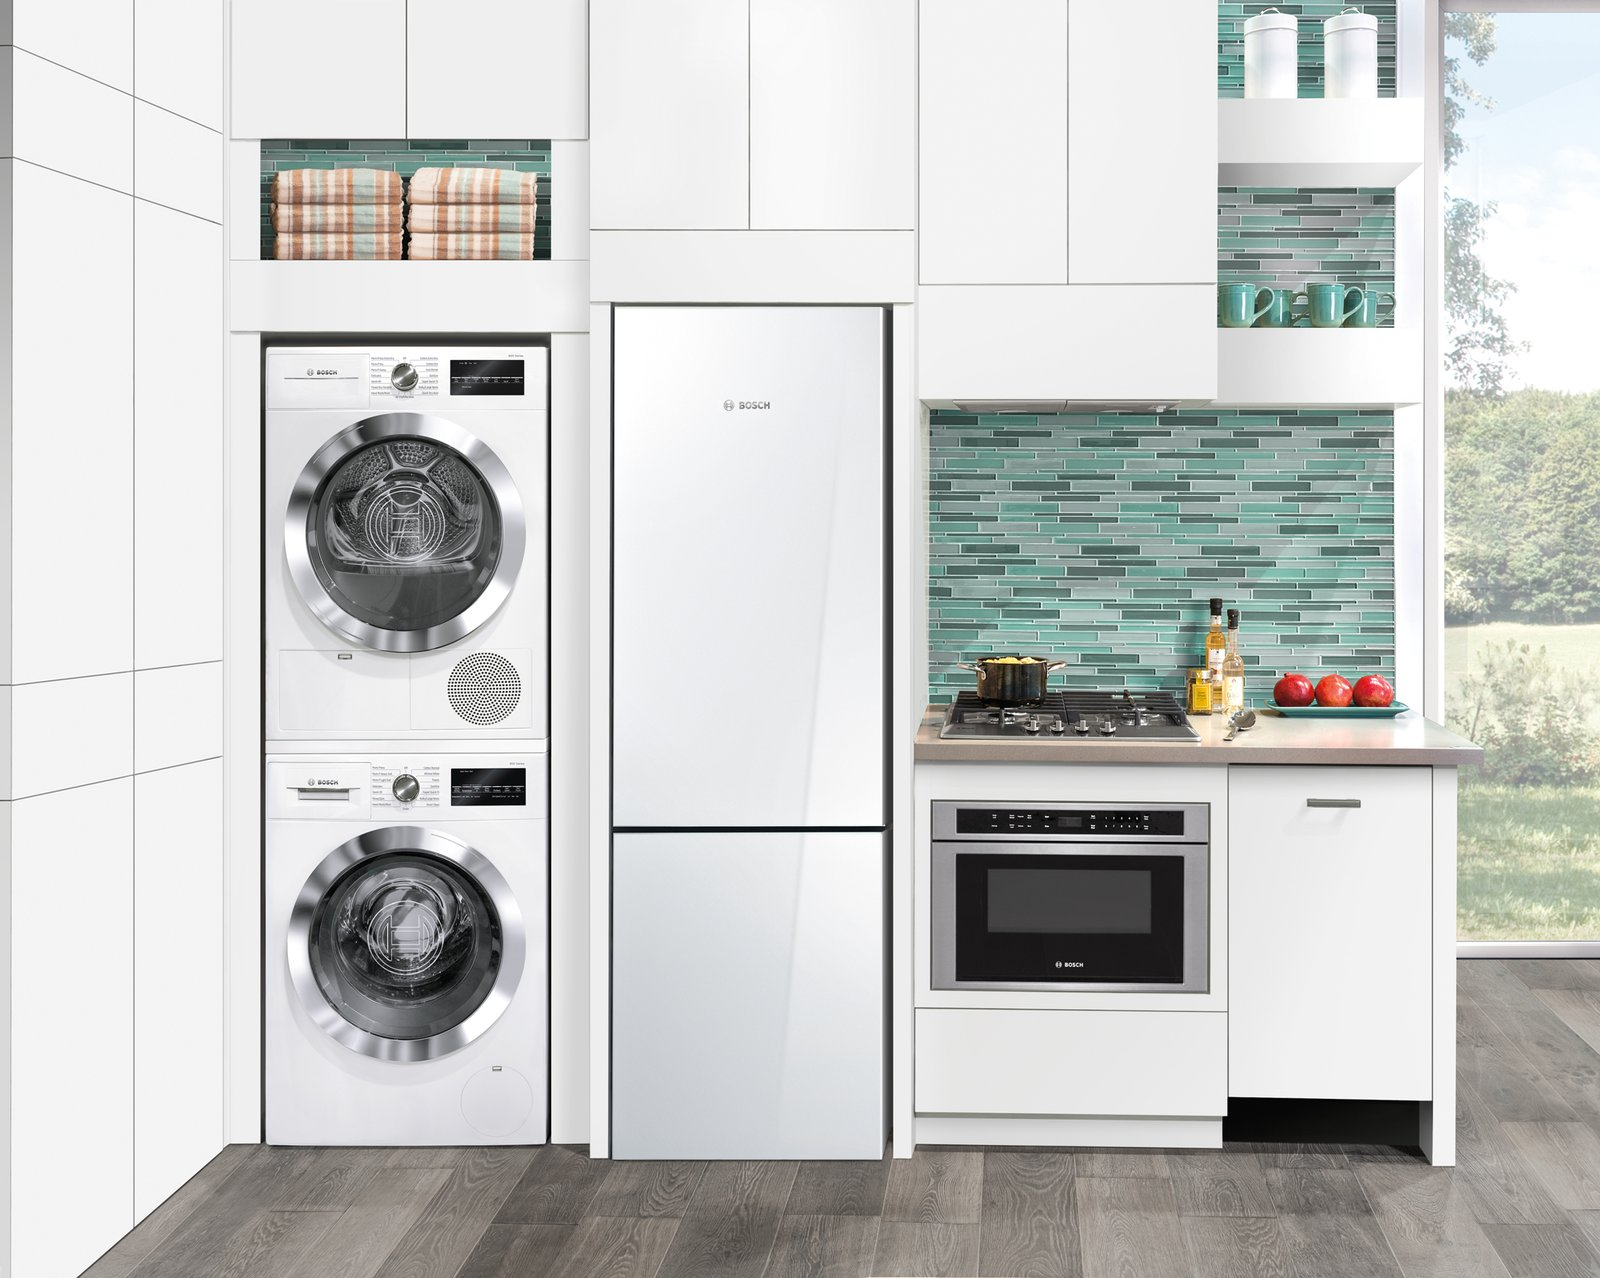 Dwell bosch 39 s streamlined kitchen and laundry appliances are made for small spaces - Microwave for small spaces image ...